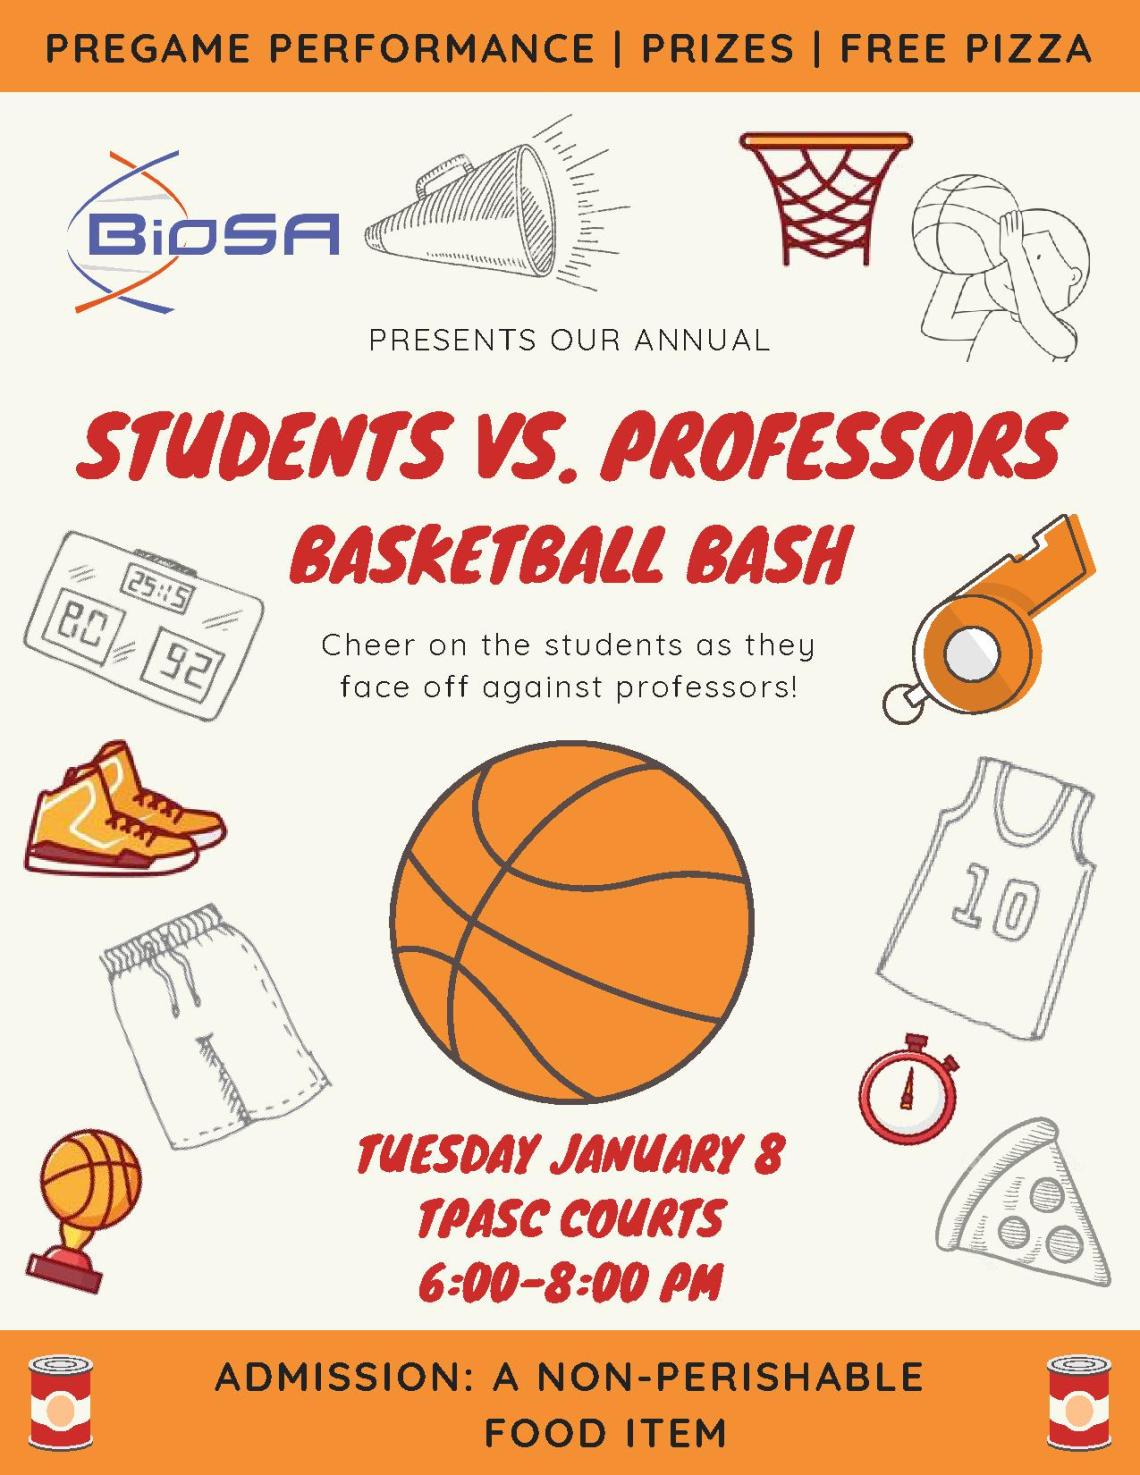 biosa students vs. professors basketball game - poster